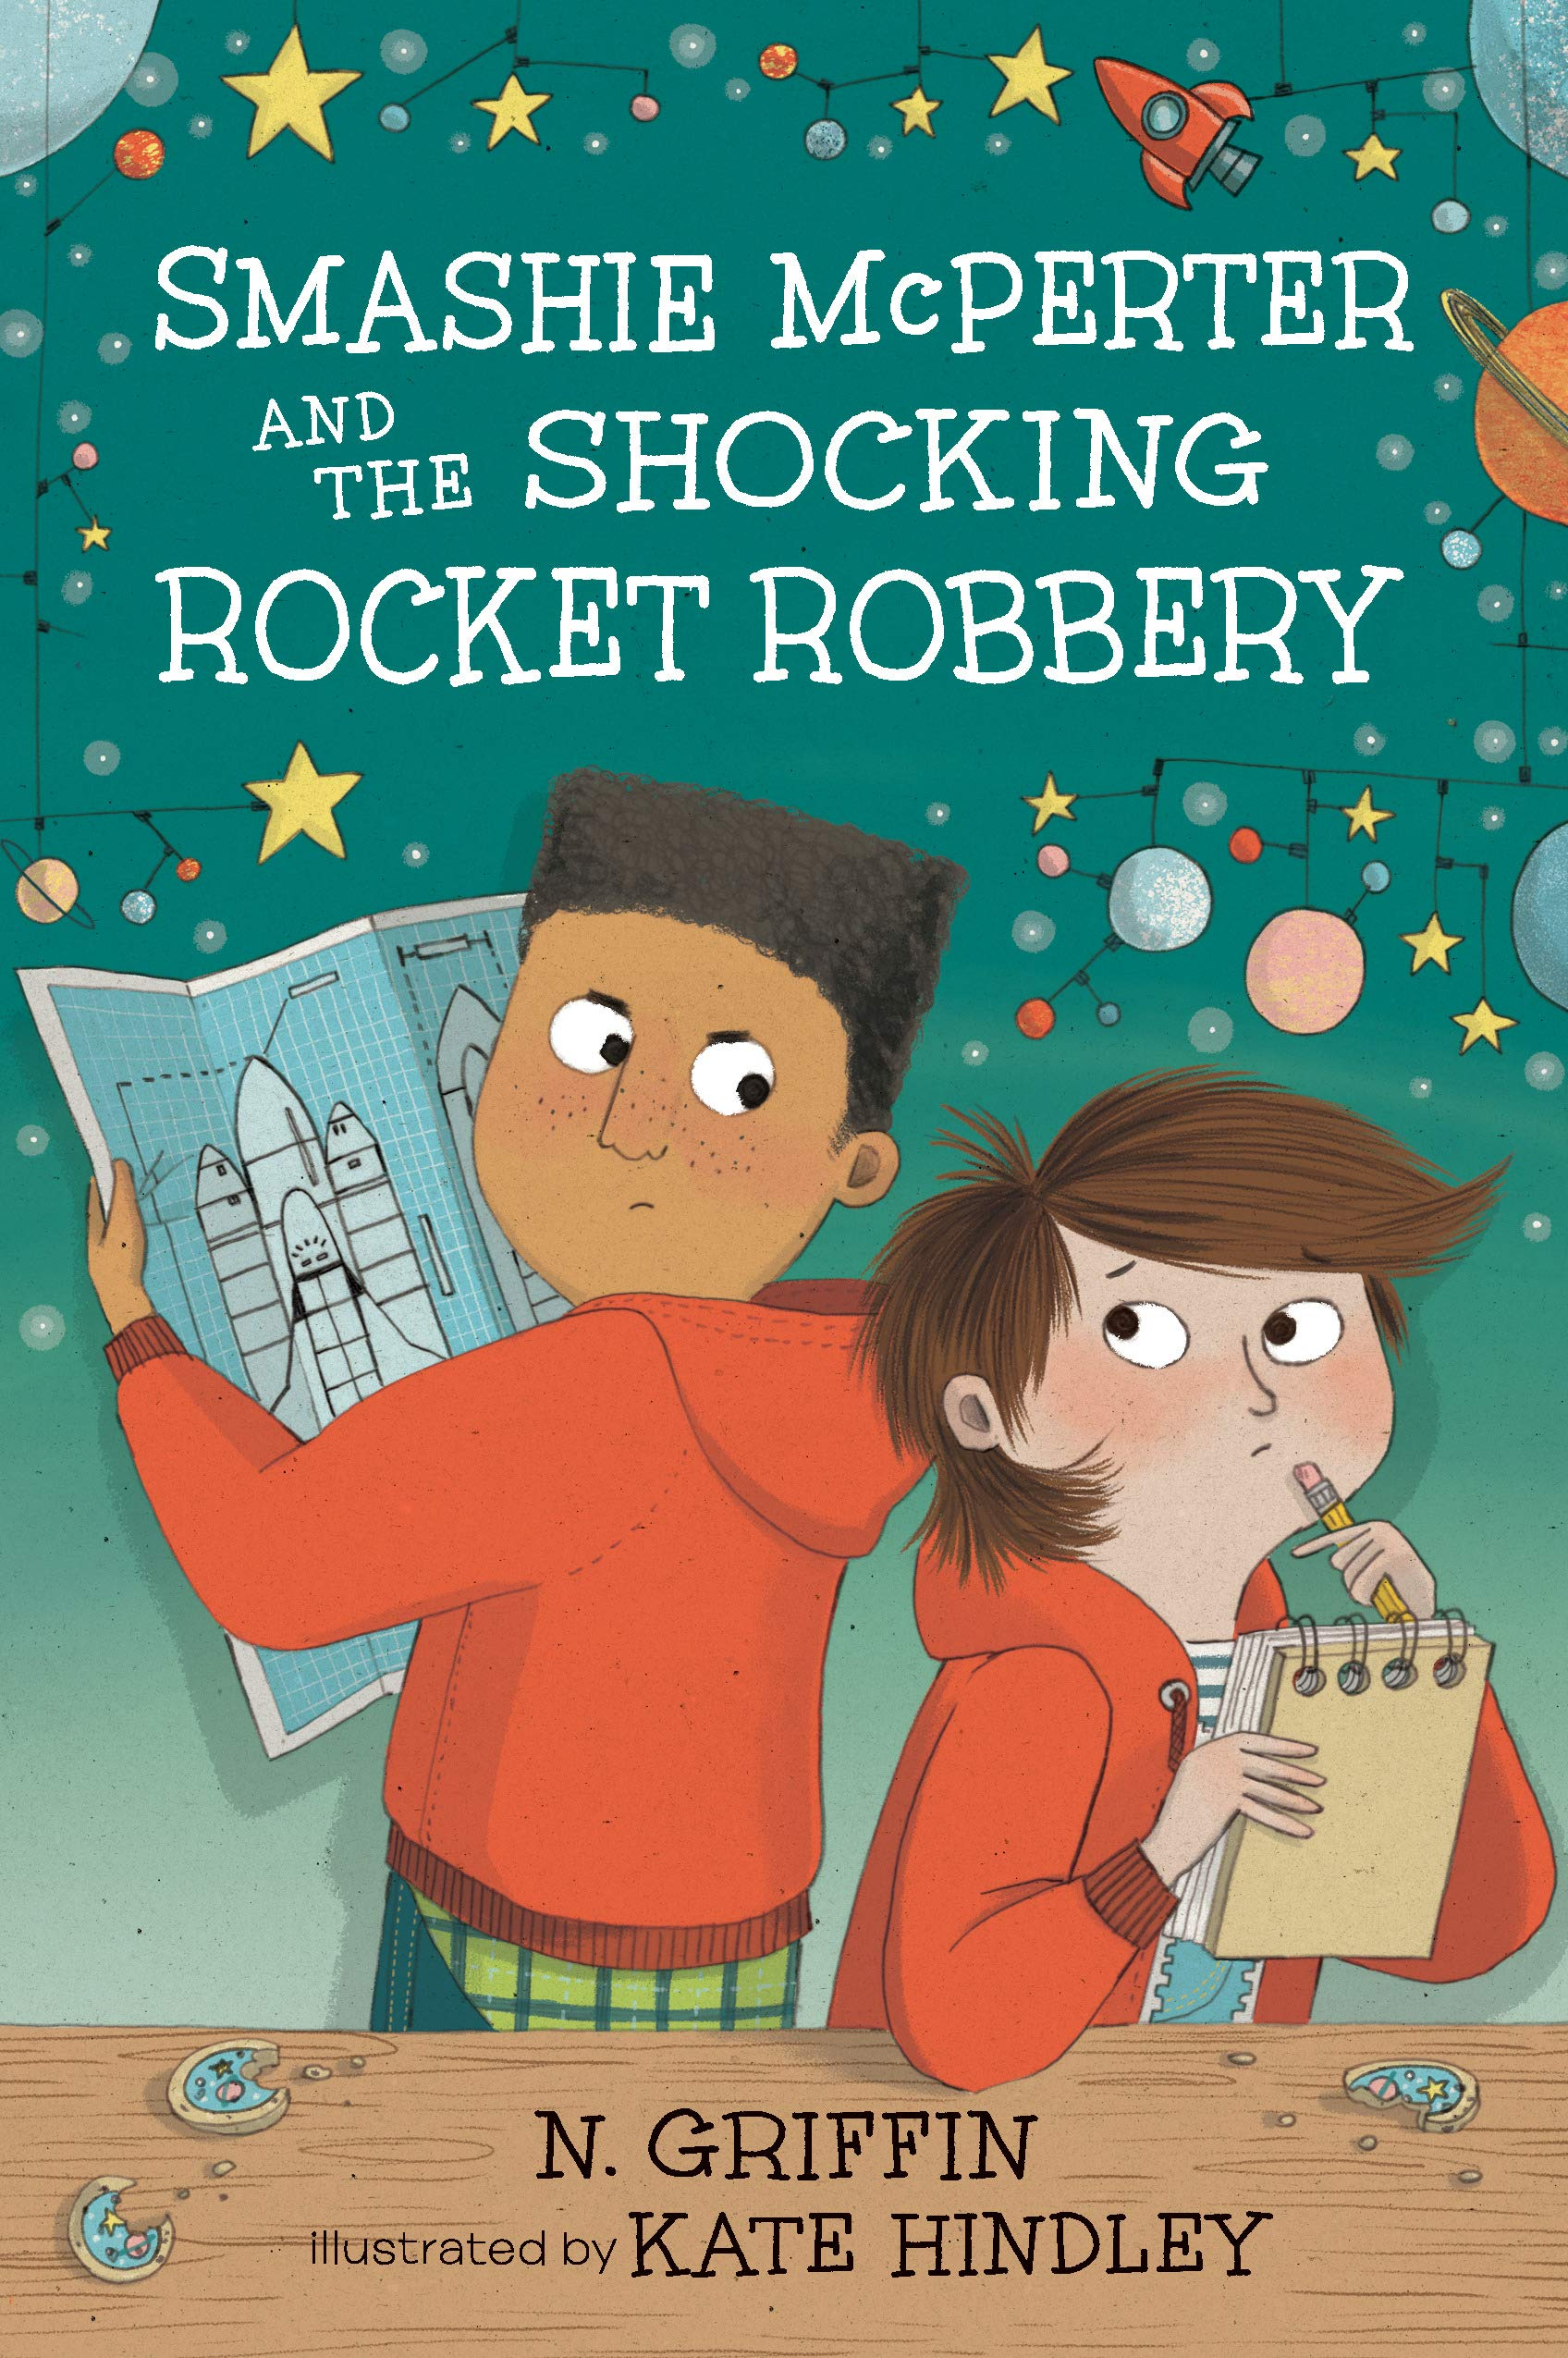 Smashie McPerter and the Shocking Rocket Robbery